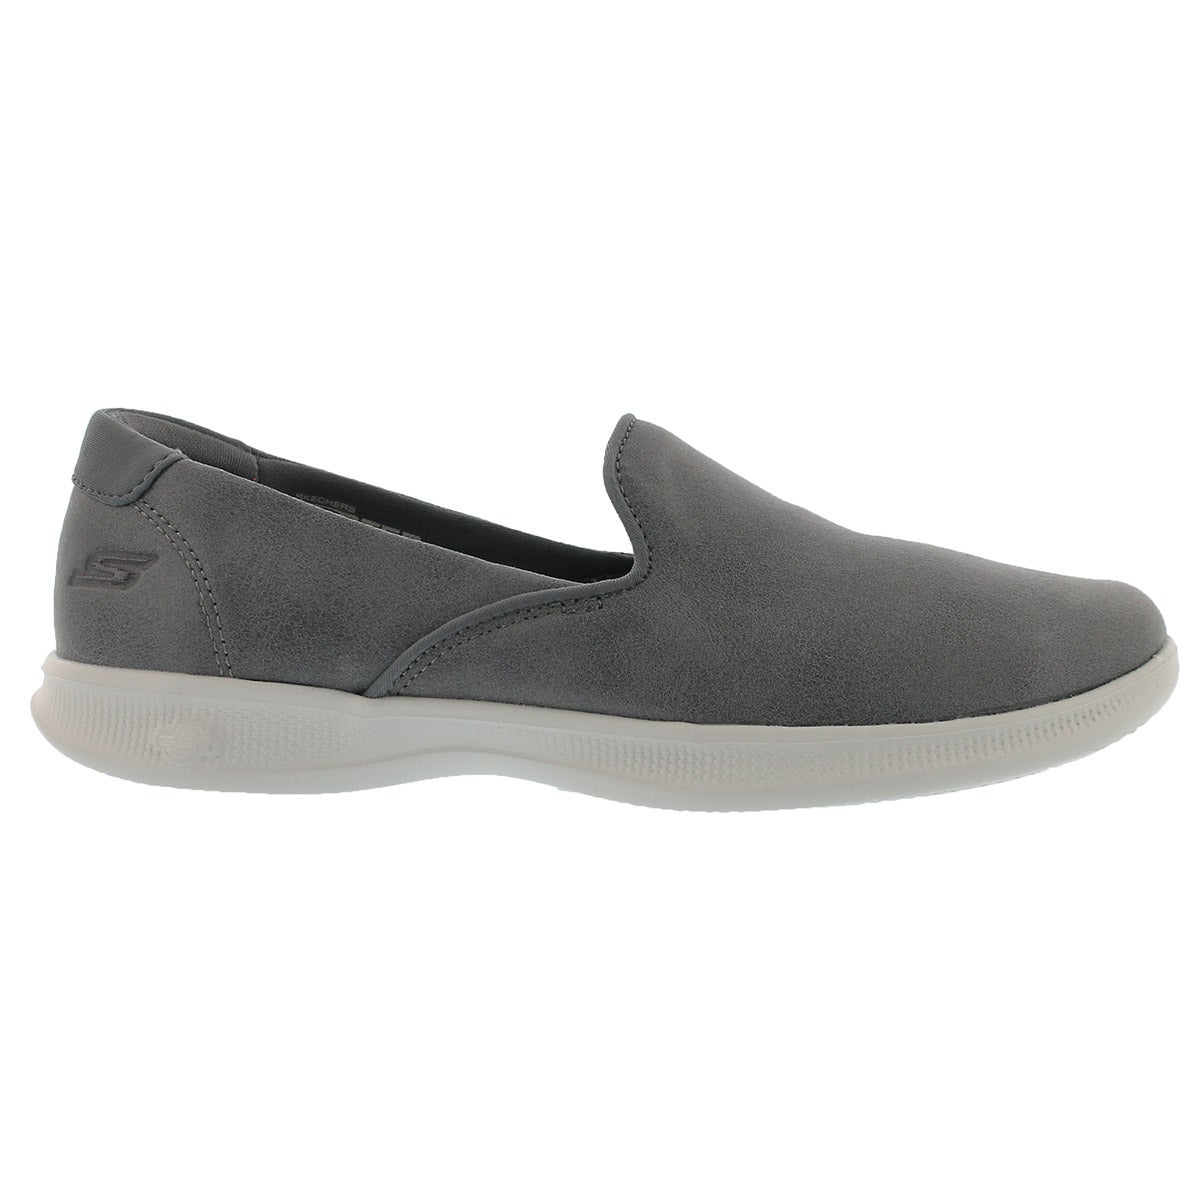 Lds GO Step Lite charcoal casual slip on